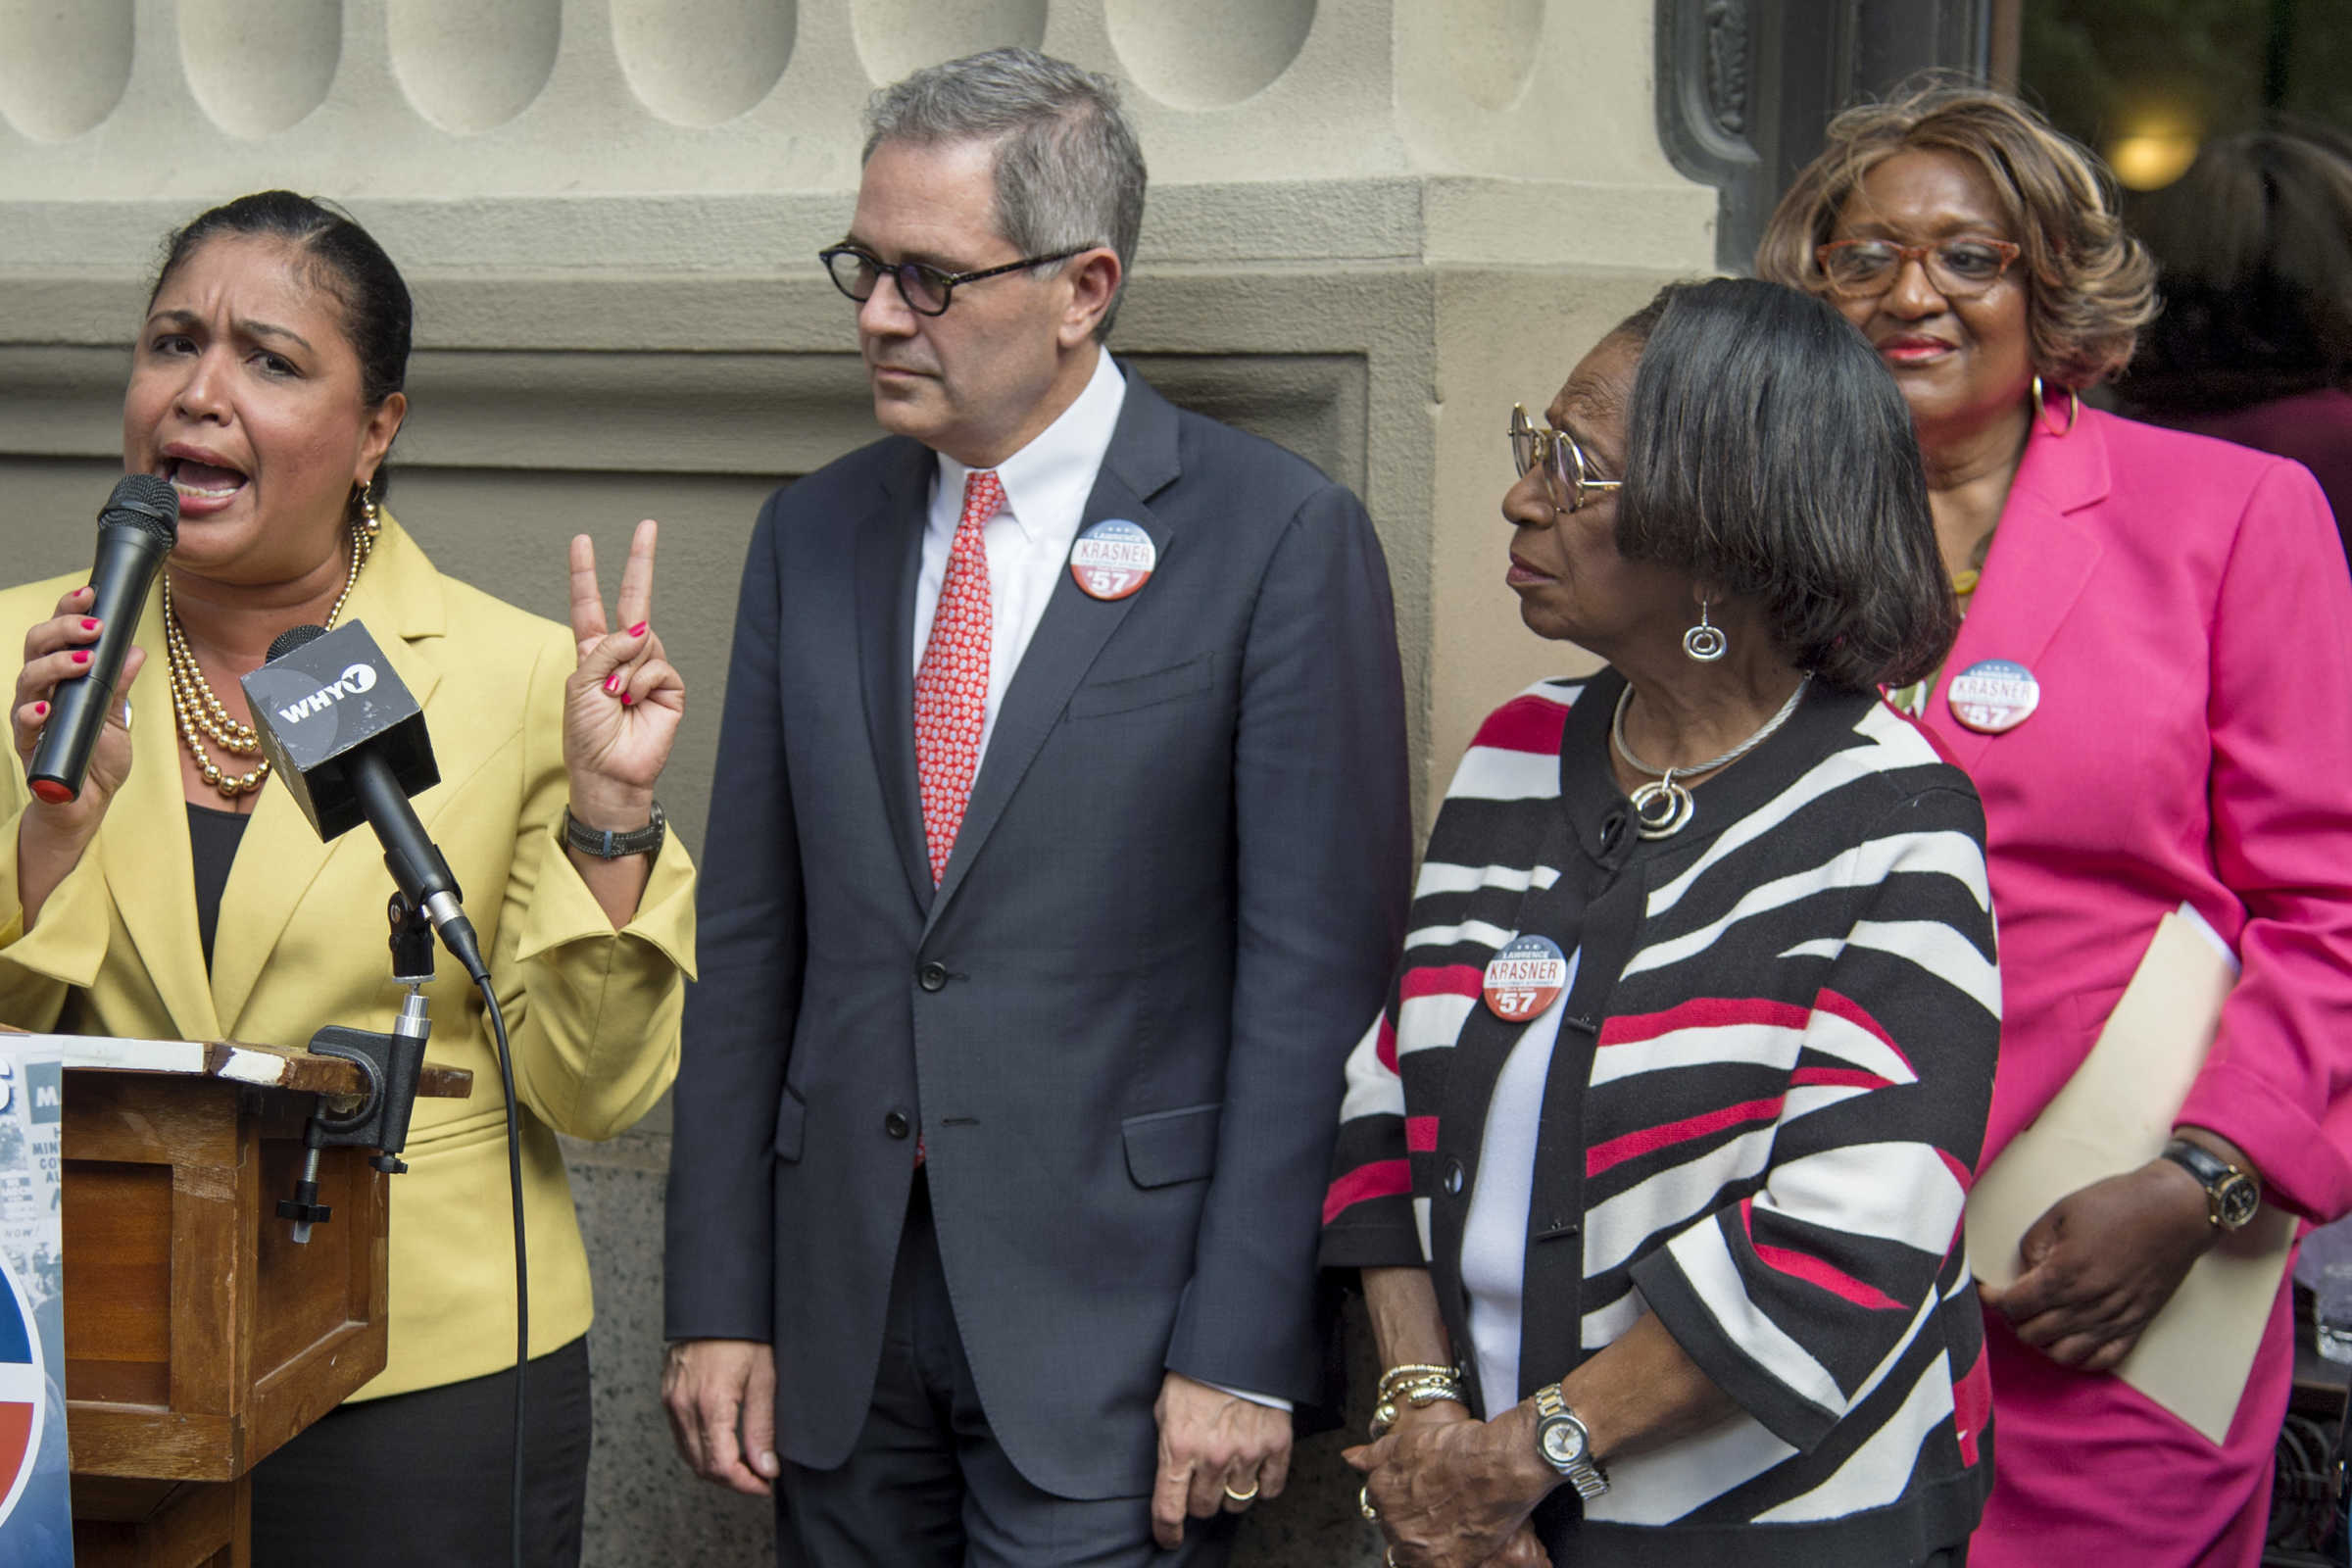 Democratic District Attorney candidate Larry Krasner is endorsed by Councilwoman Maria Quiñones Sánchez (left) former City Councilwoman Marian Tasco (second from right) and State Rep. Isabella Fitzgerald (right) outside the DA's Office May 1, 2017.